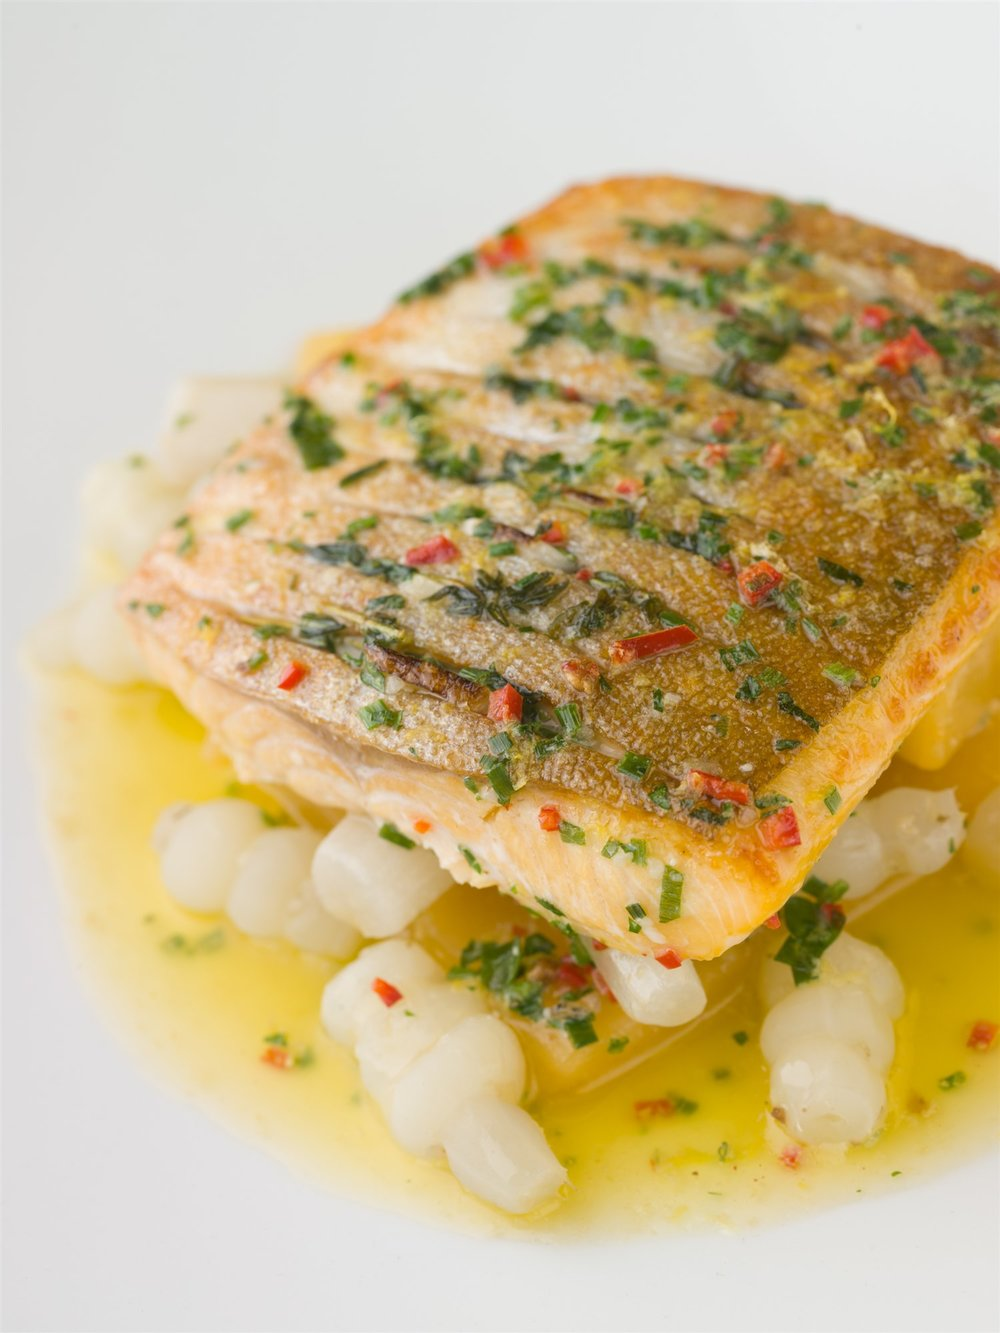 Arctic char over crosnes (Chinese artichokes) in lemon butter, at  Araxi .  John Sherlock | Courtesy Toptable Group